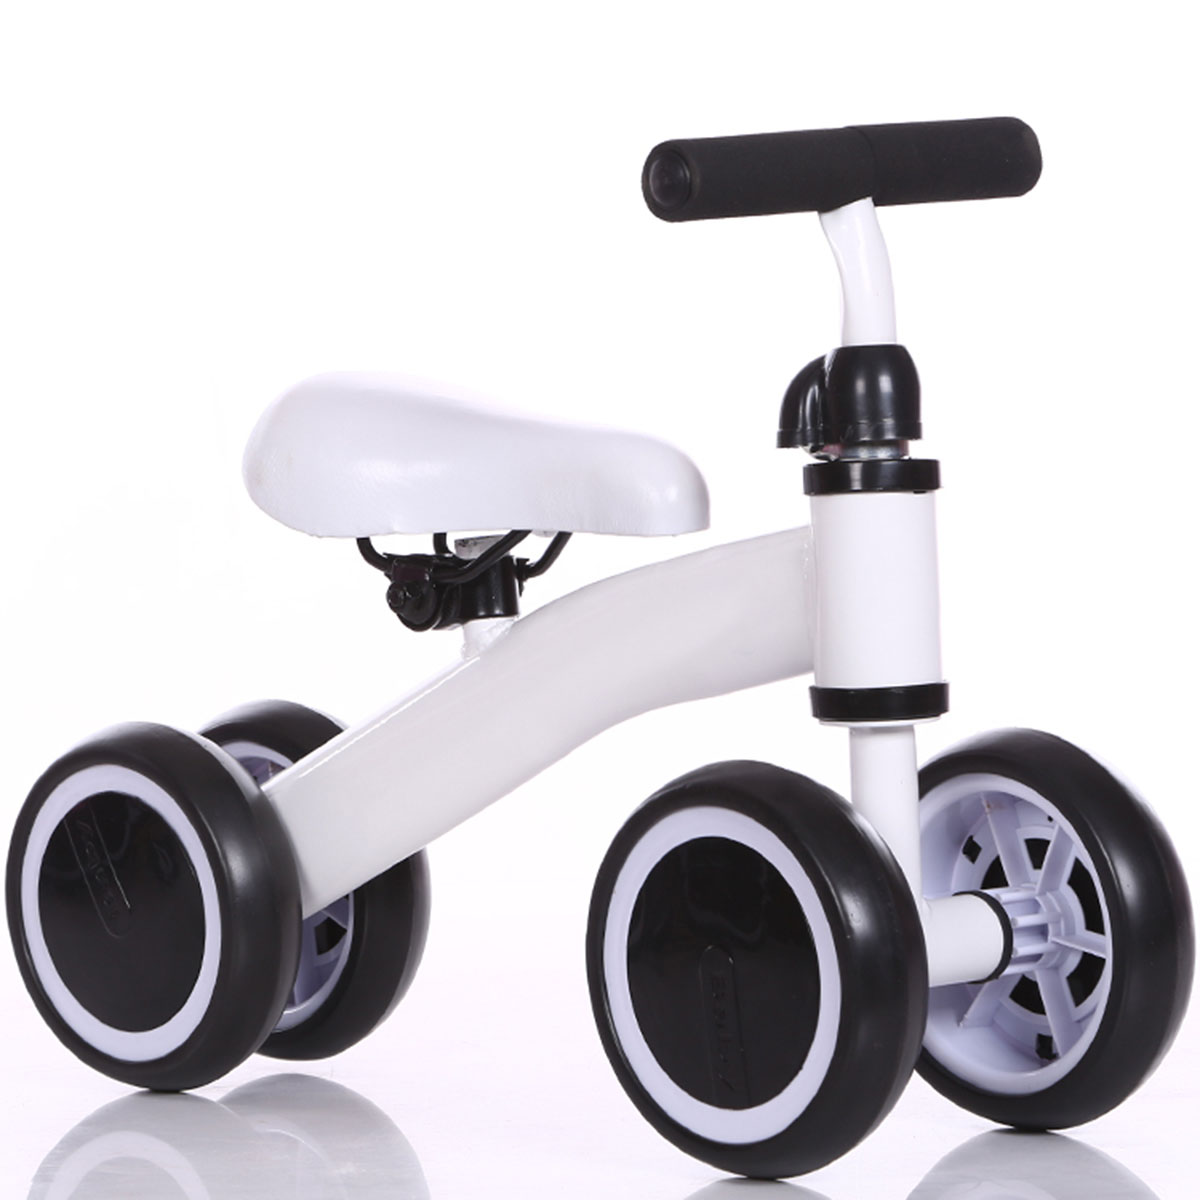 Baby Balance Bike Learn To Walk Get Balance Sense No Foot Pedal Riding Toys For Kids Baby Toddler 1-3 Years Child Tricycle Bike